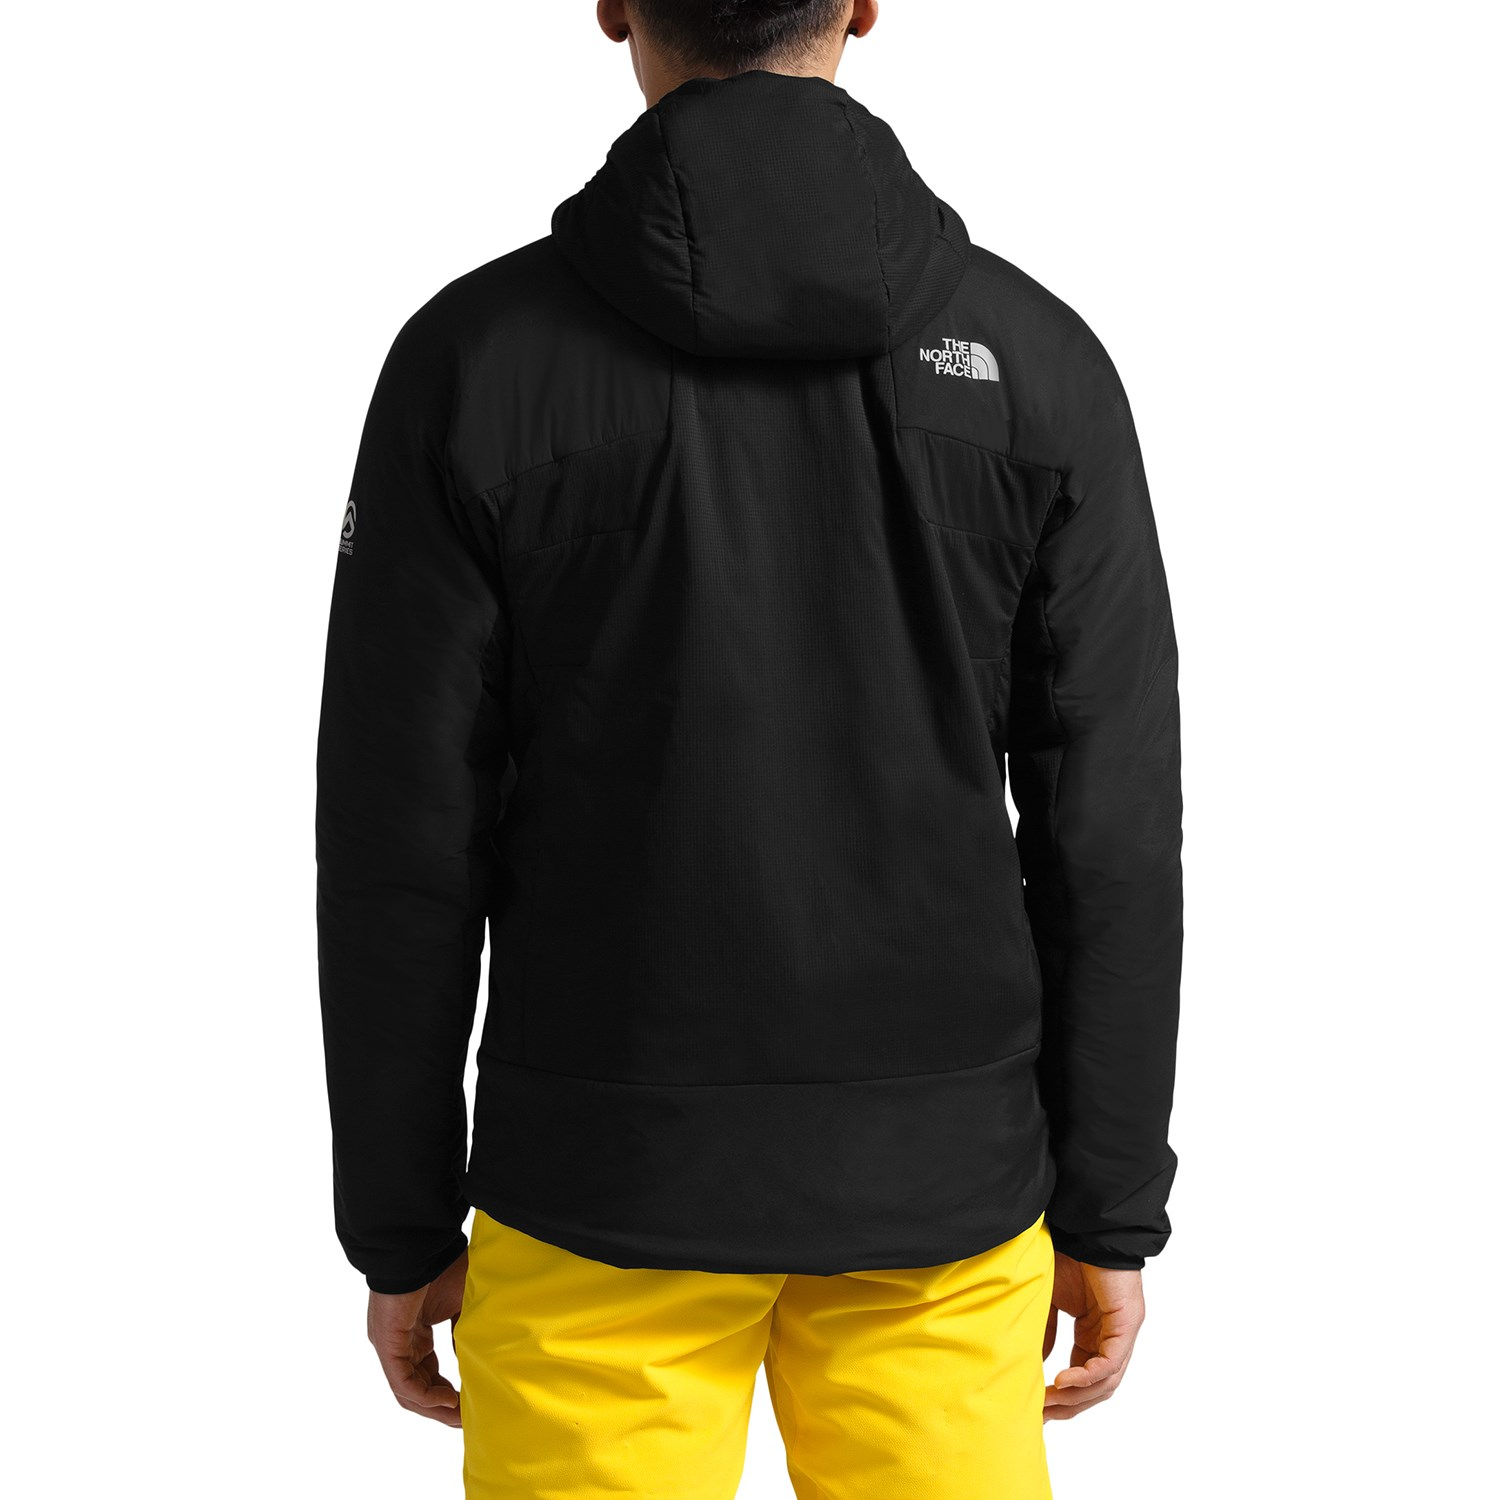 02f0d9d25 The North Face Summit L3 Ventrix™ 1/2 Zip Hoodie